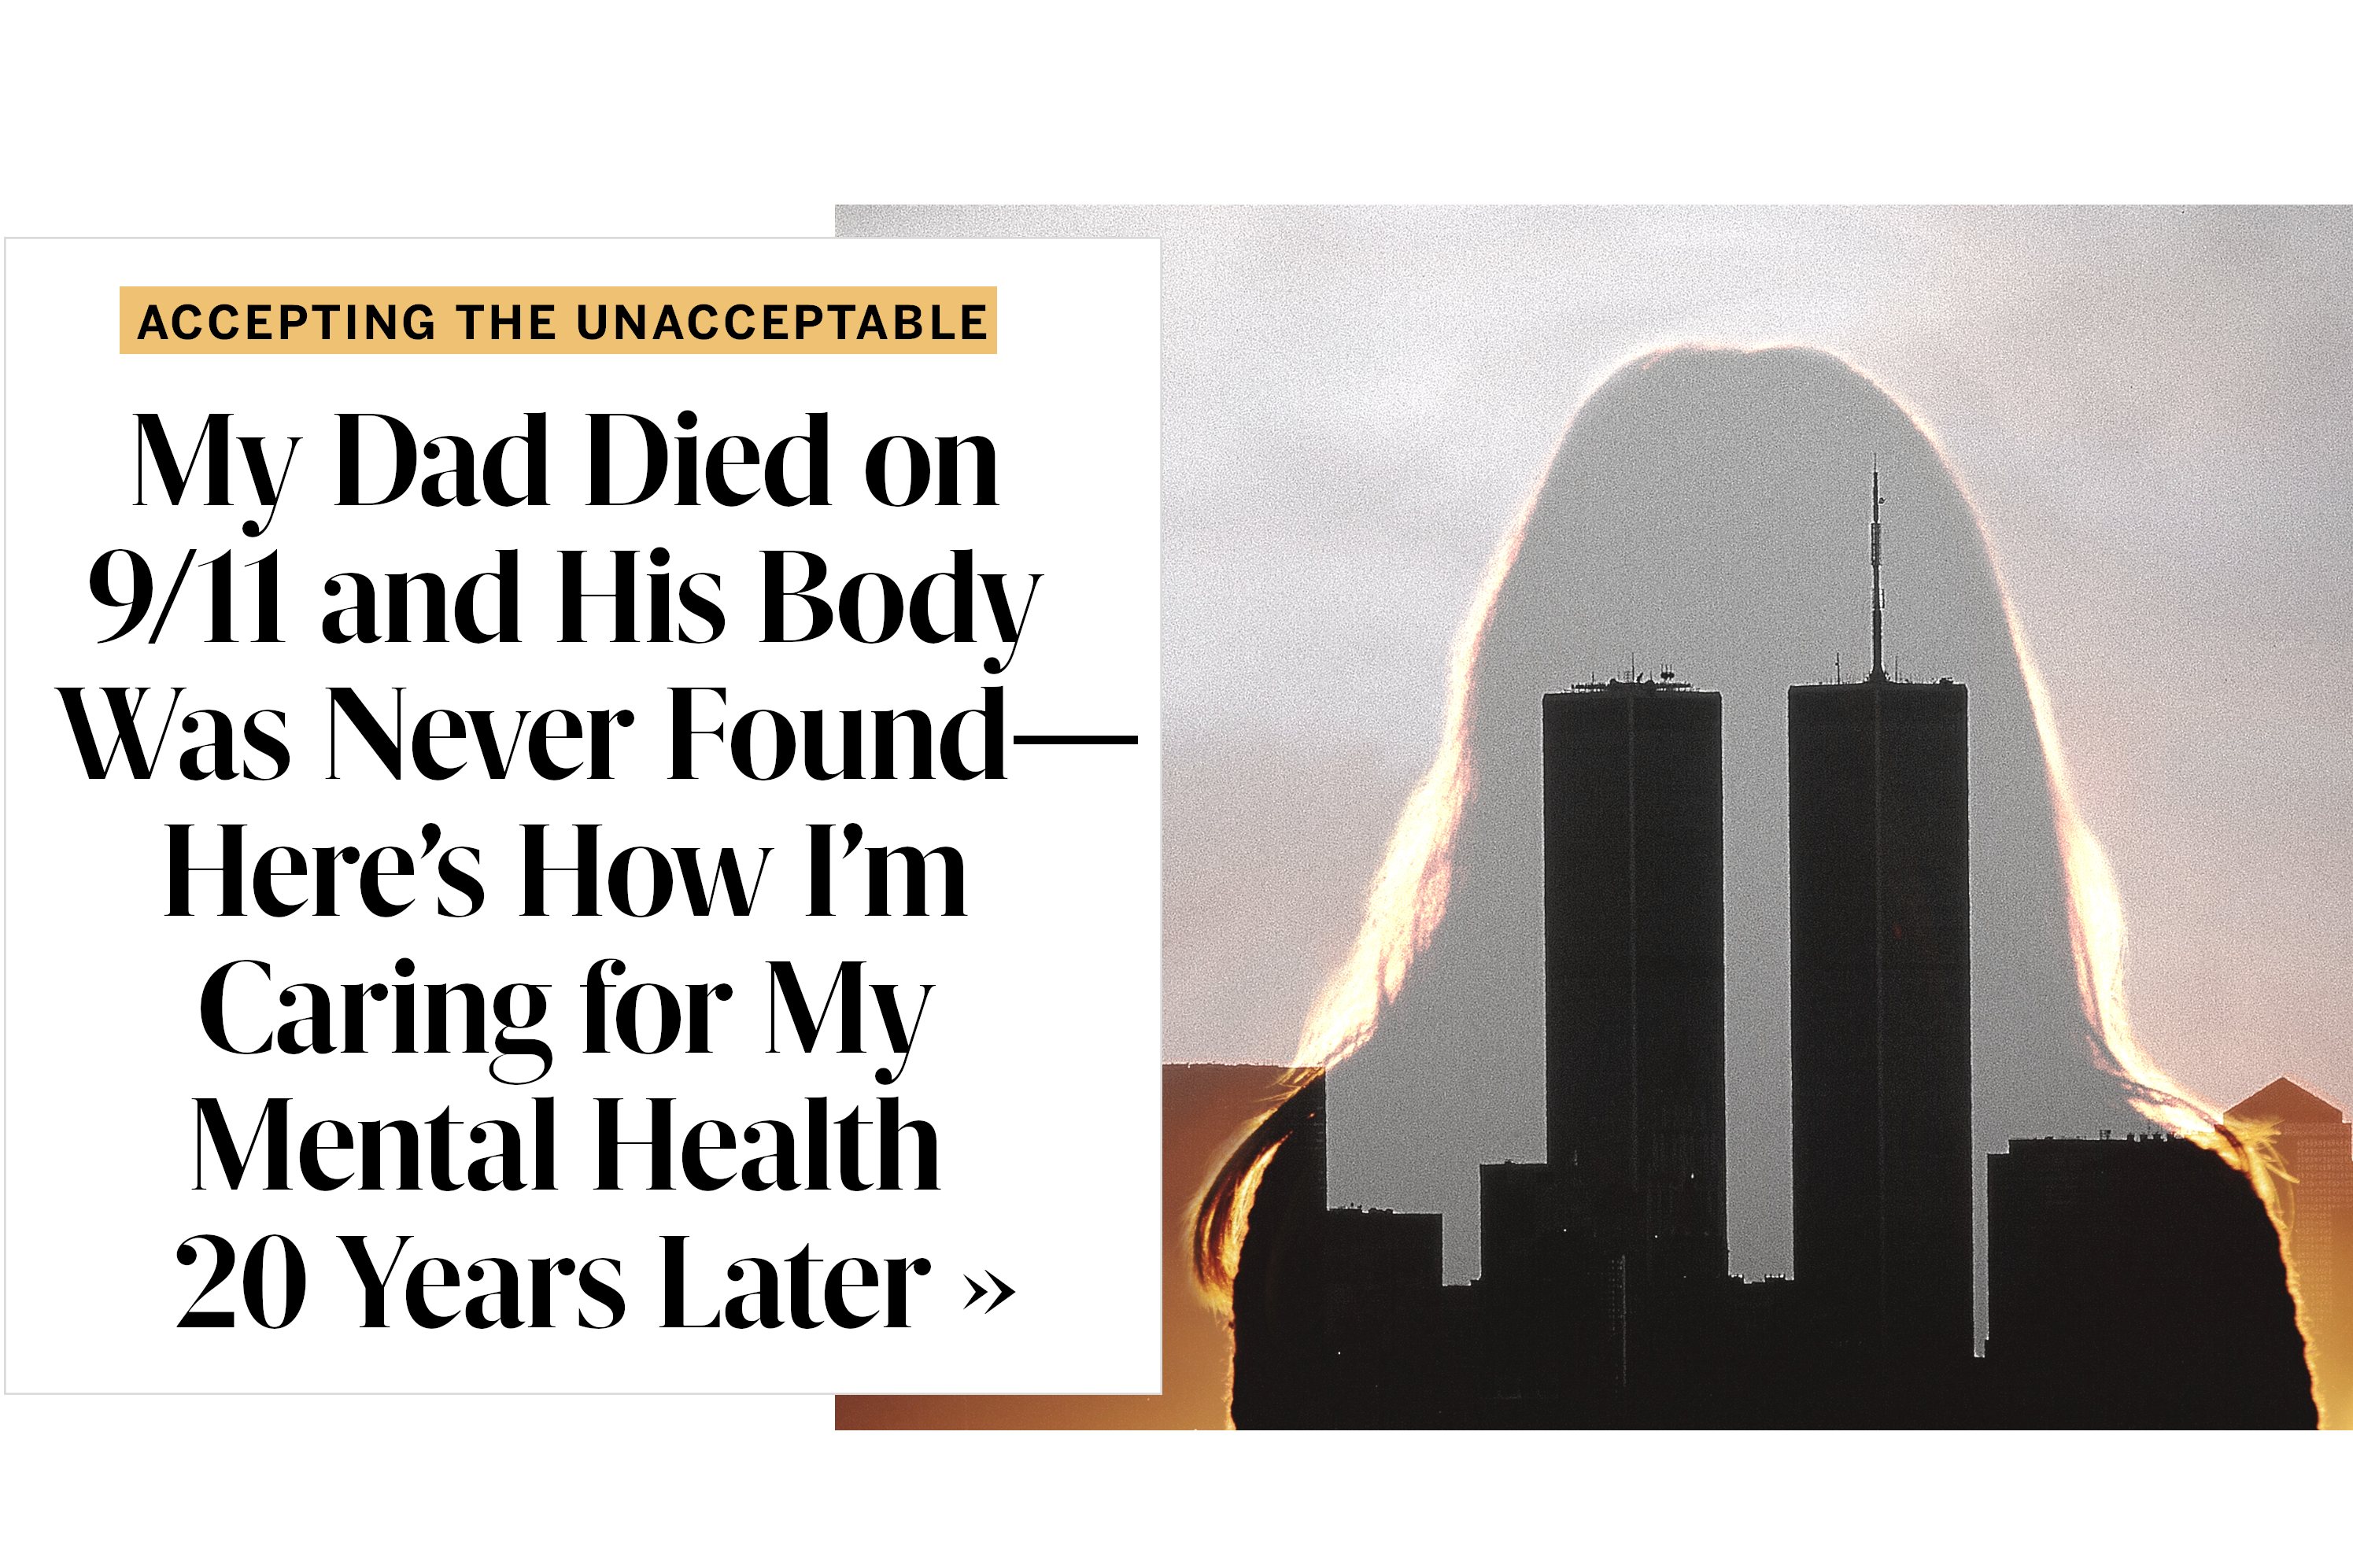 My Dad Died on 9/11 and His Body Was Never Found—Here's How I'm Caring for My Mental Health 20 Years Later